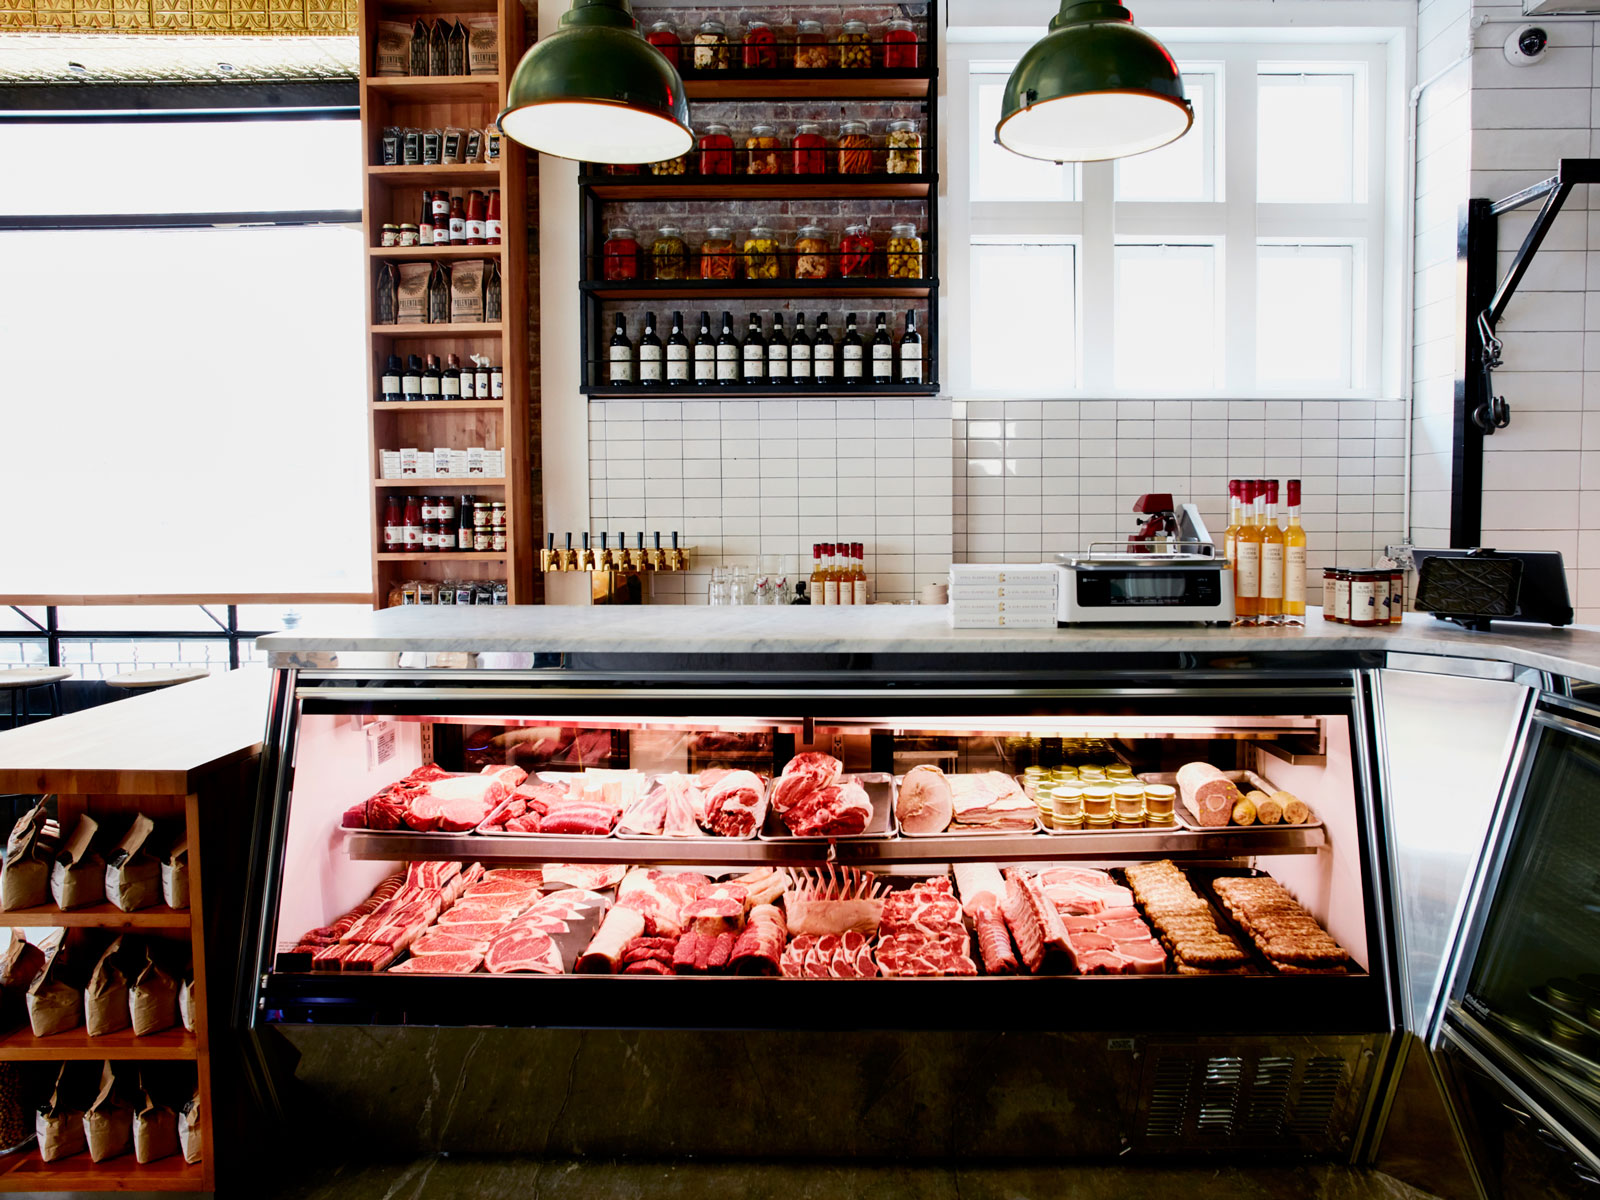 How the Butcher Shop Revival Has Changed Restaurants for the Better